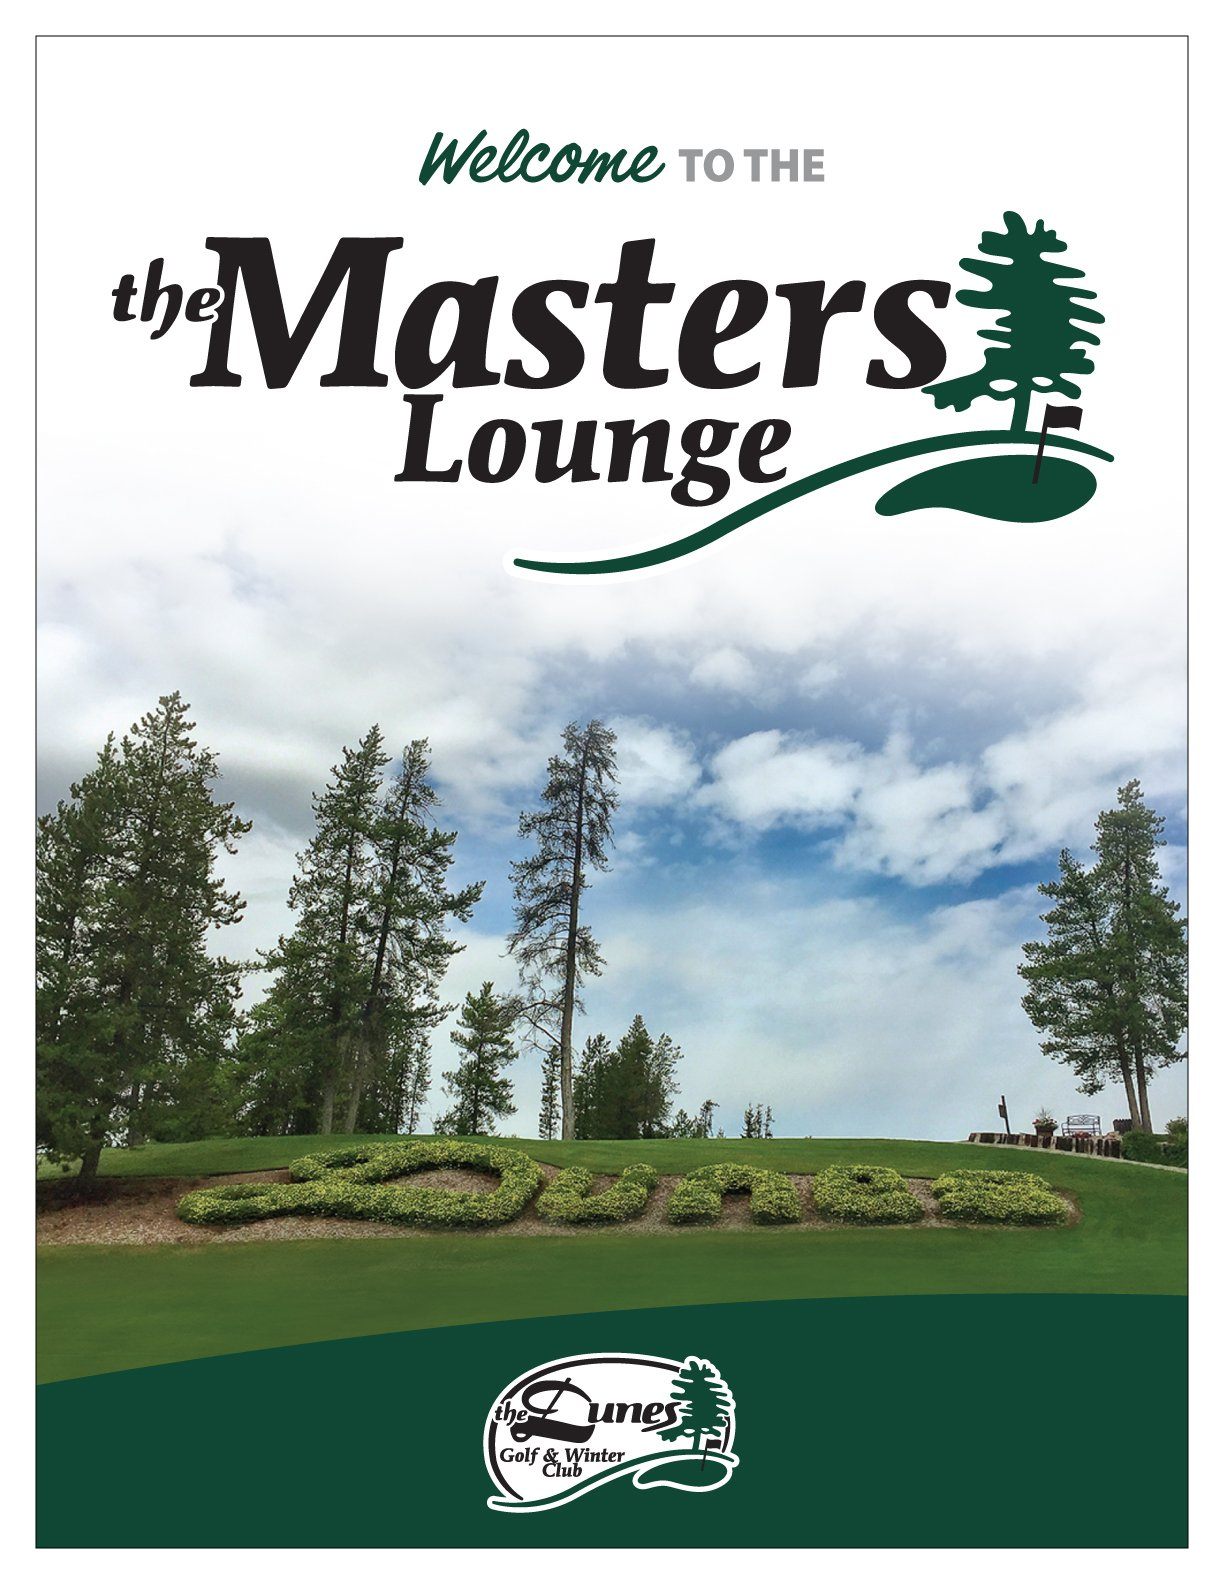 The Masters Lunge Full Menu